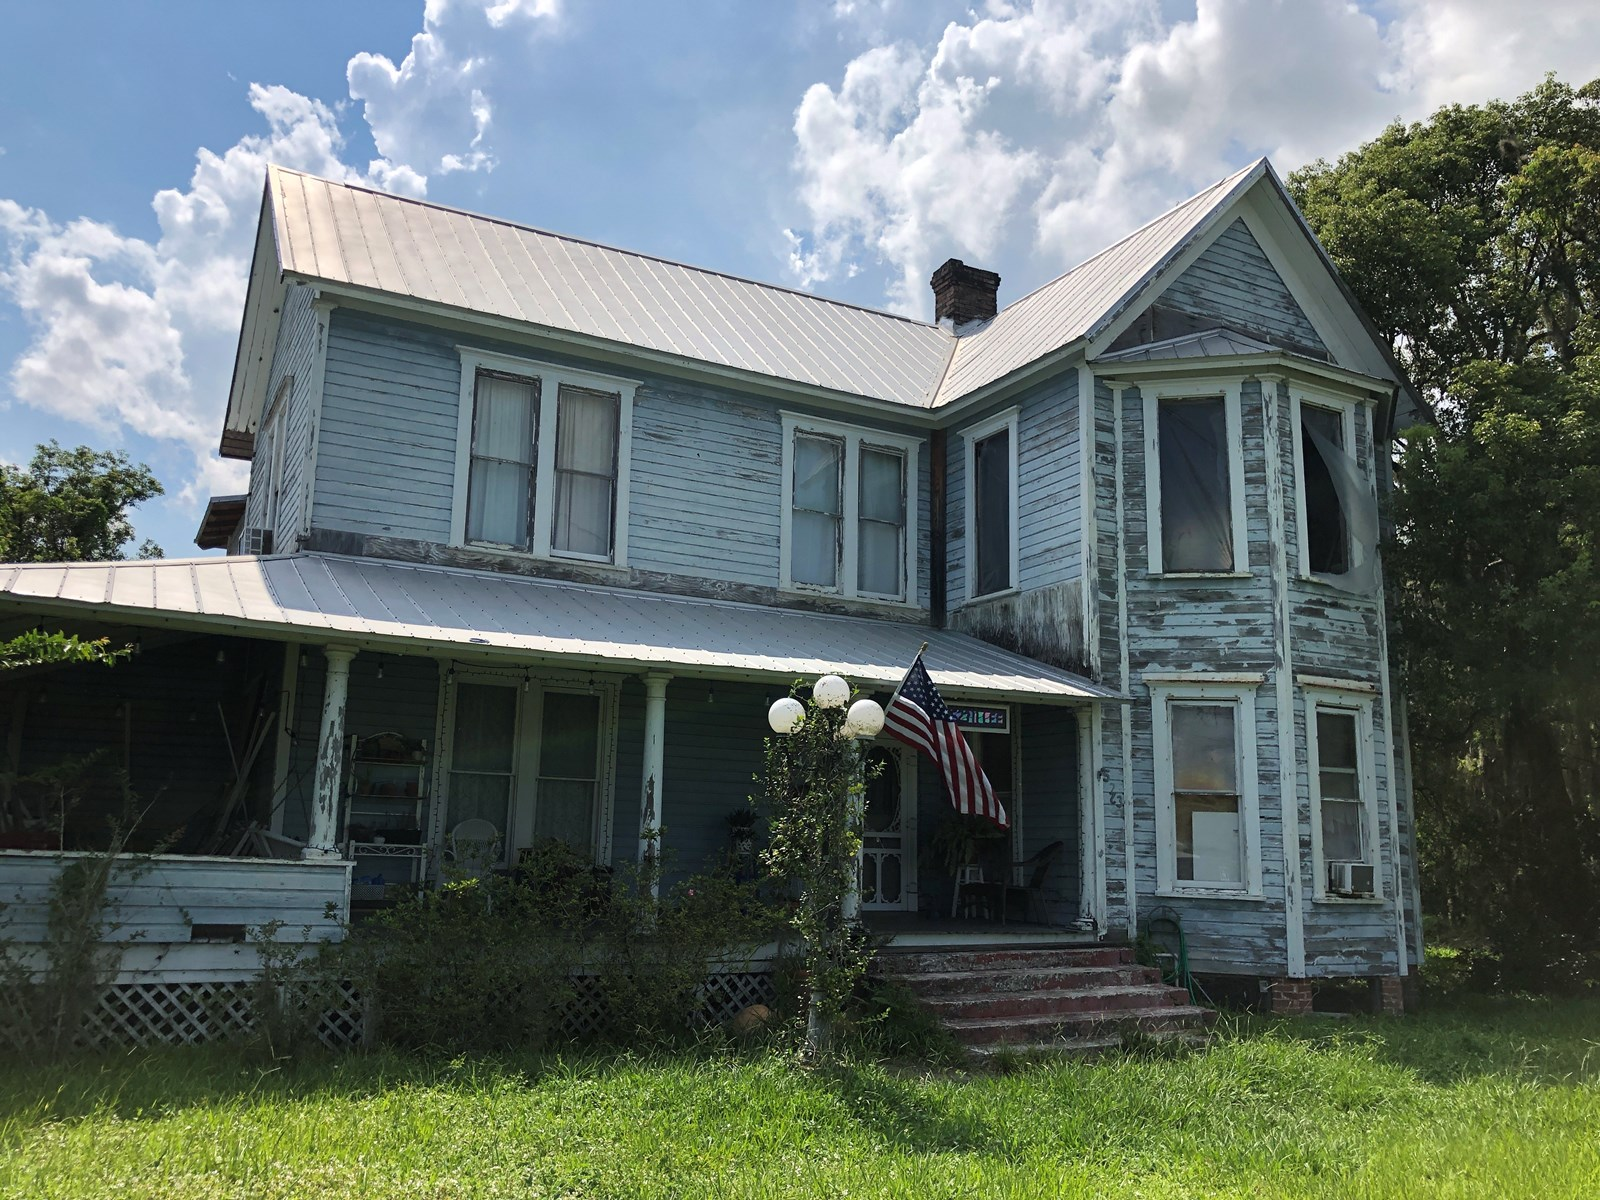 CLASSIC 1906 VICTORIAN HOME IN NEED OF RESTORATION